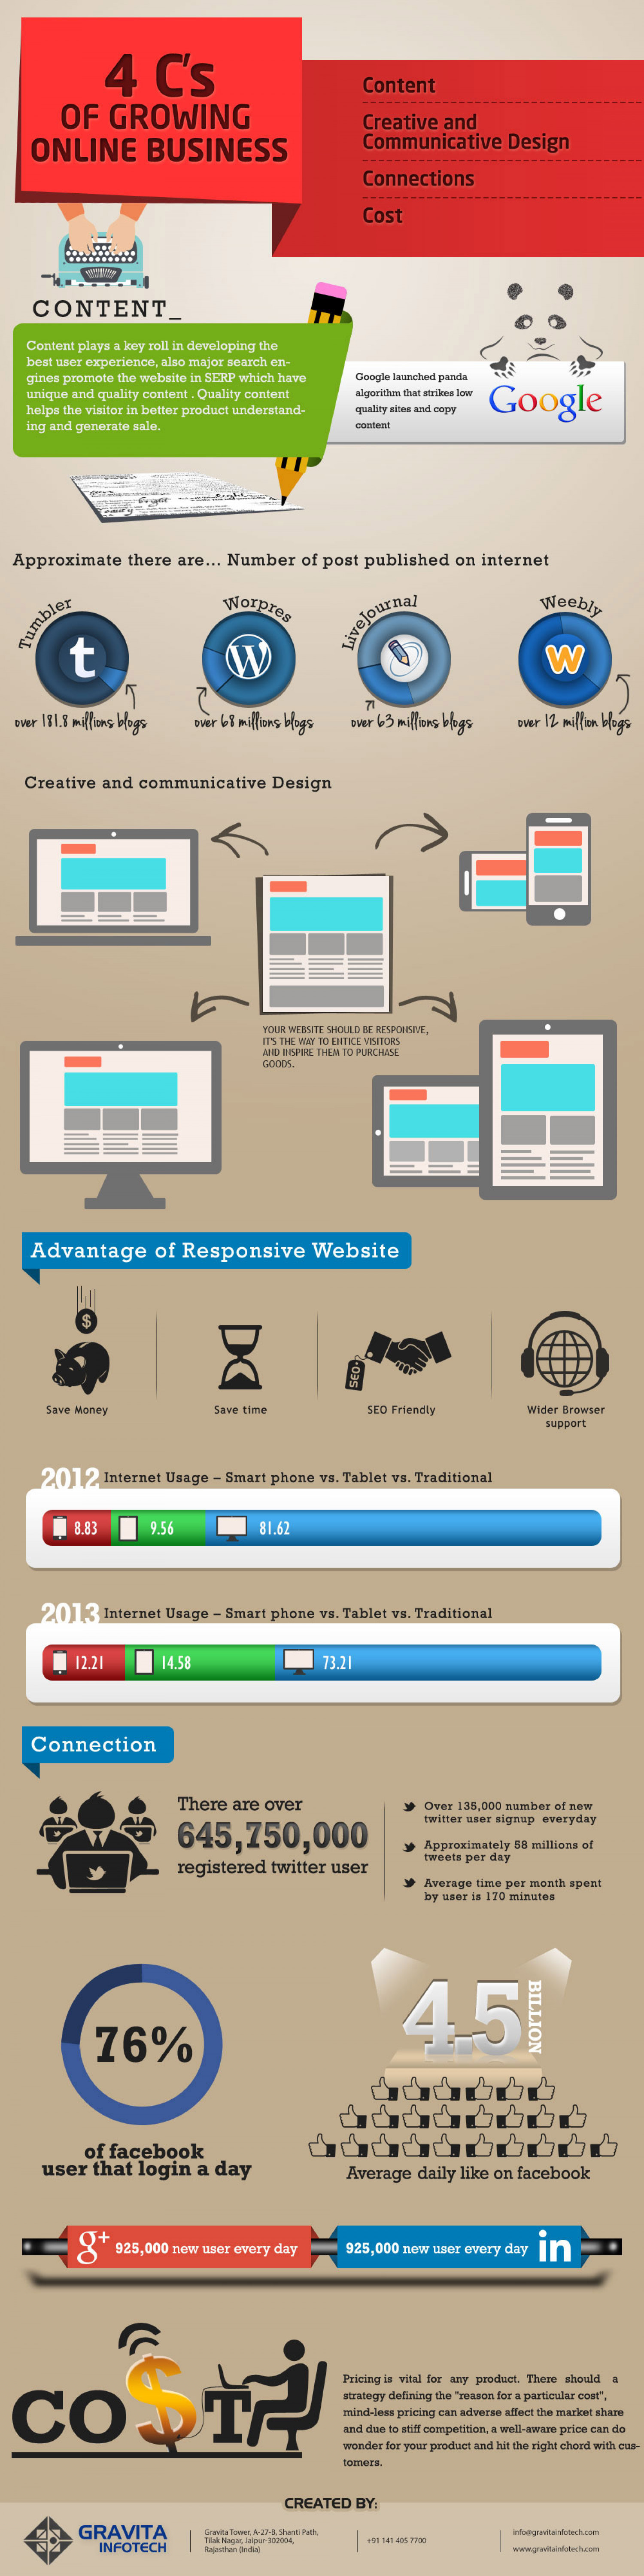 4 C's of Growing Online Business Infographic